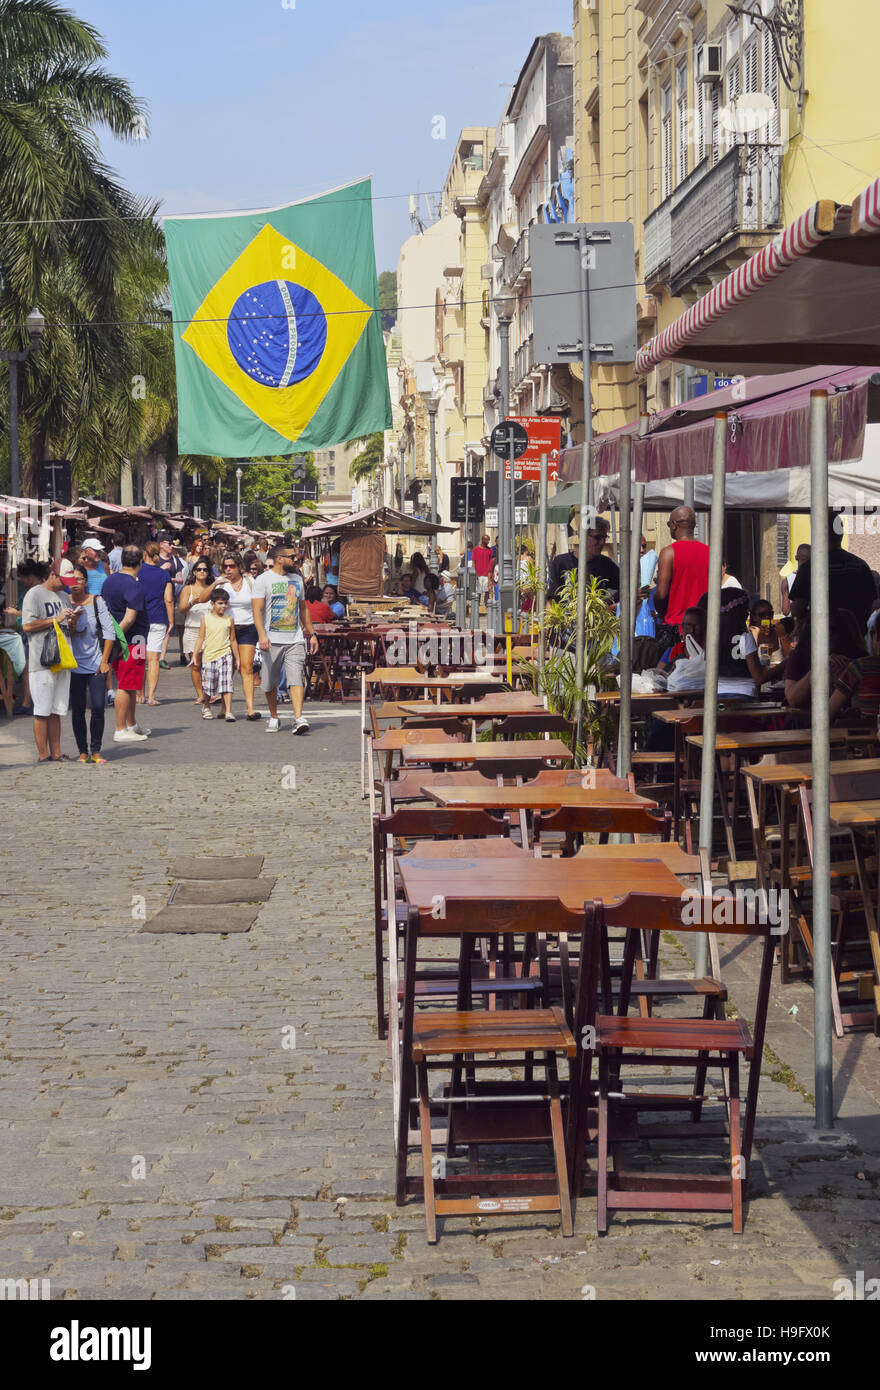 Brazil City Of Rio De Janeiro Lapa Monthly Craft And Flea Market On